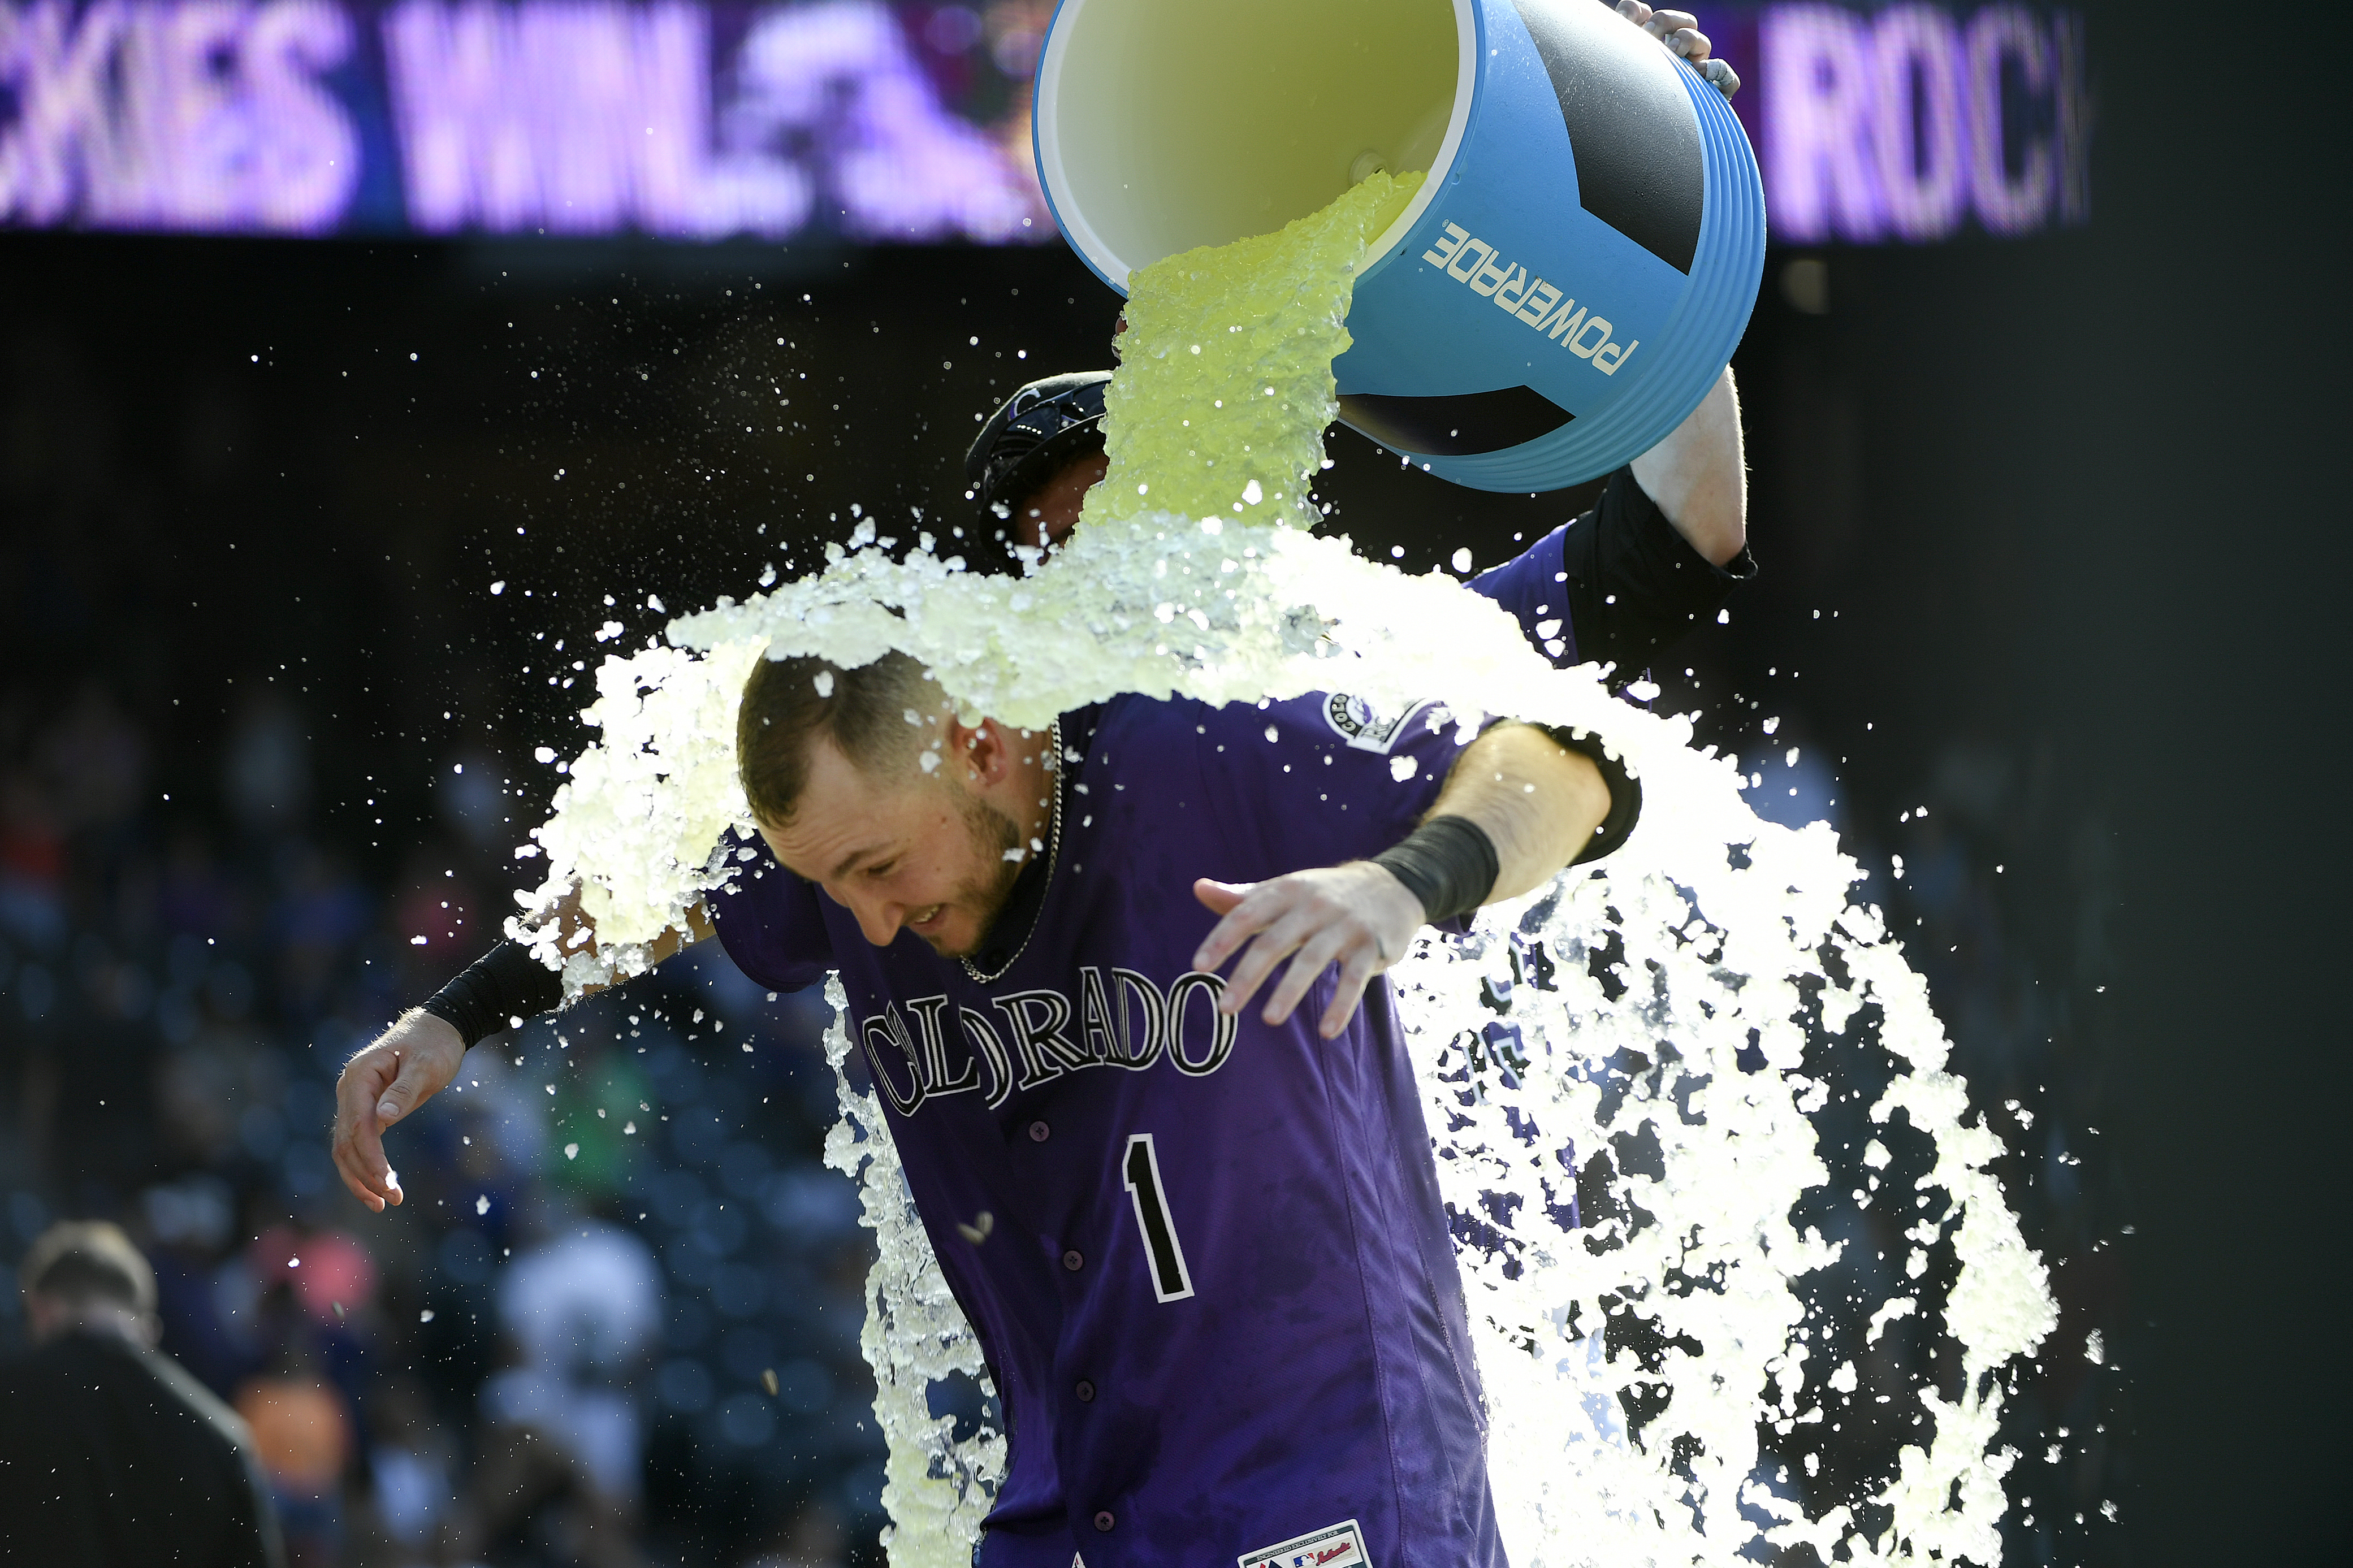 Colorado Rockies take on the Miami Marlins at Coors Field.